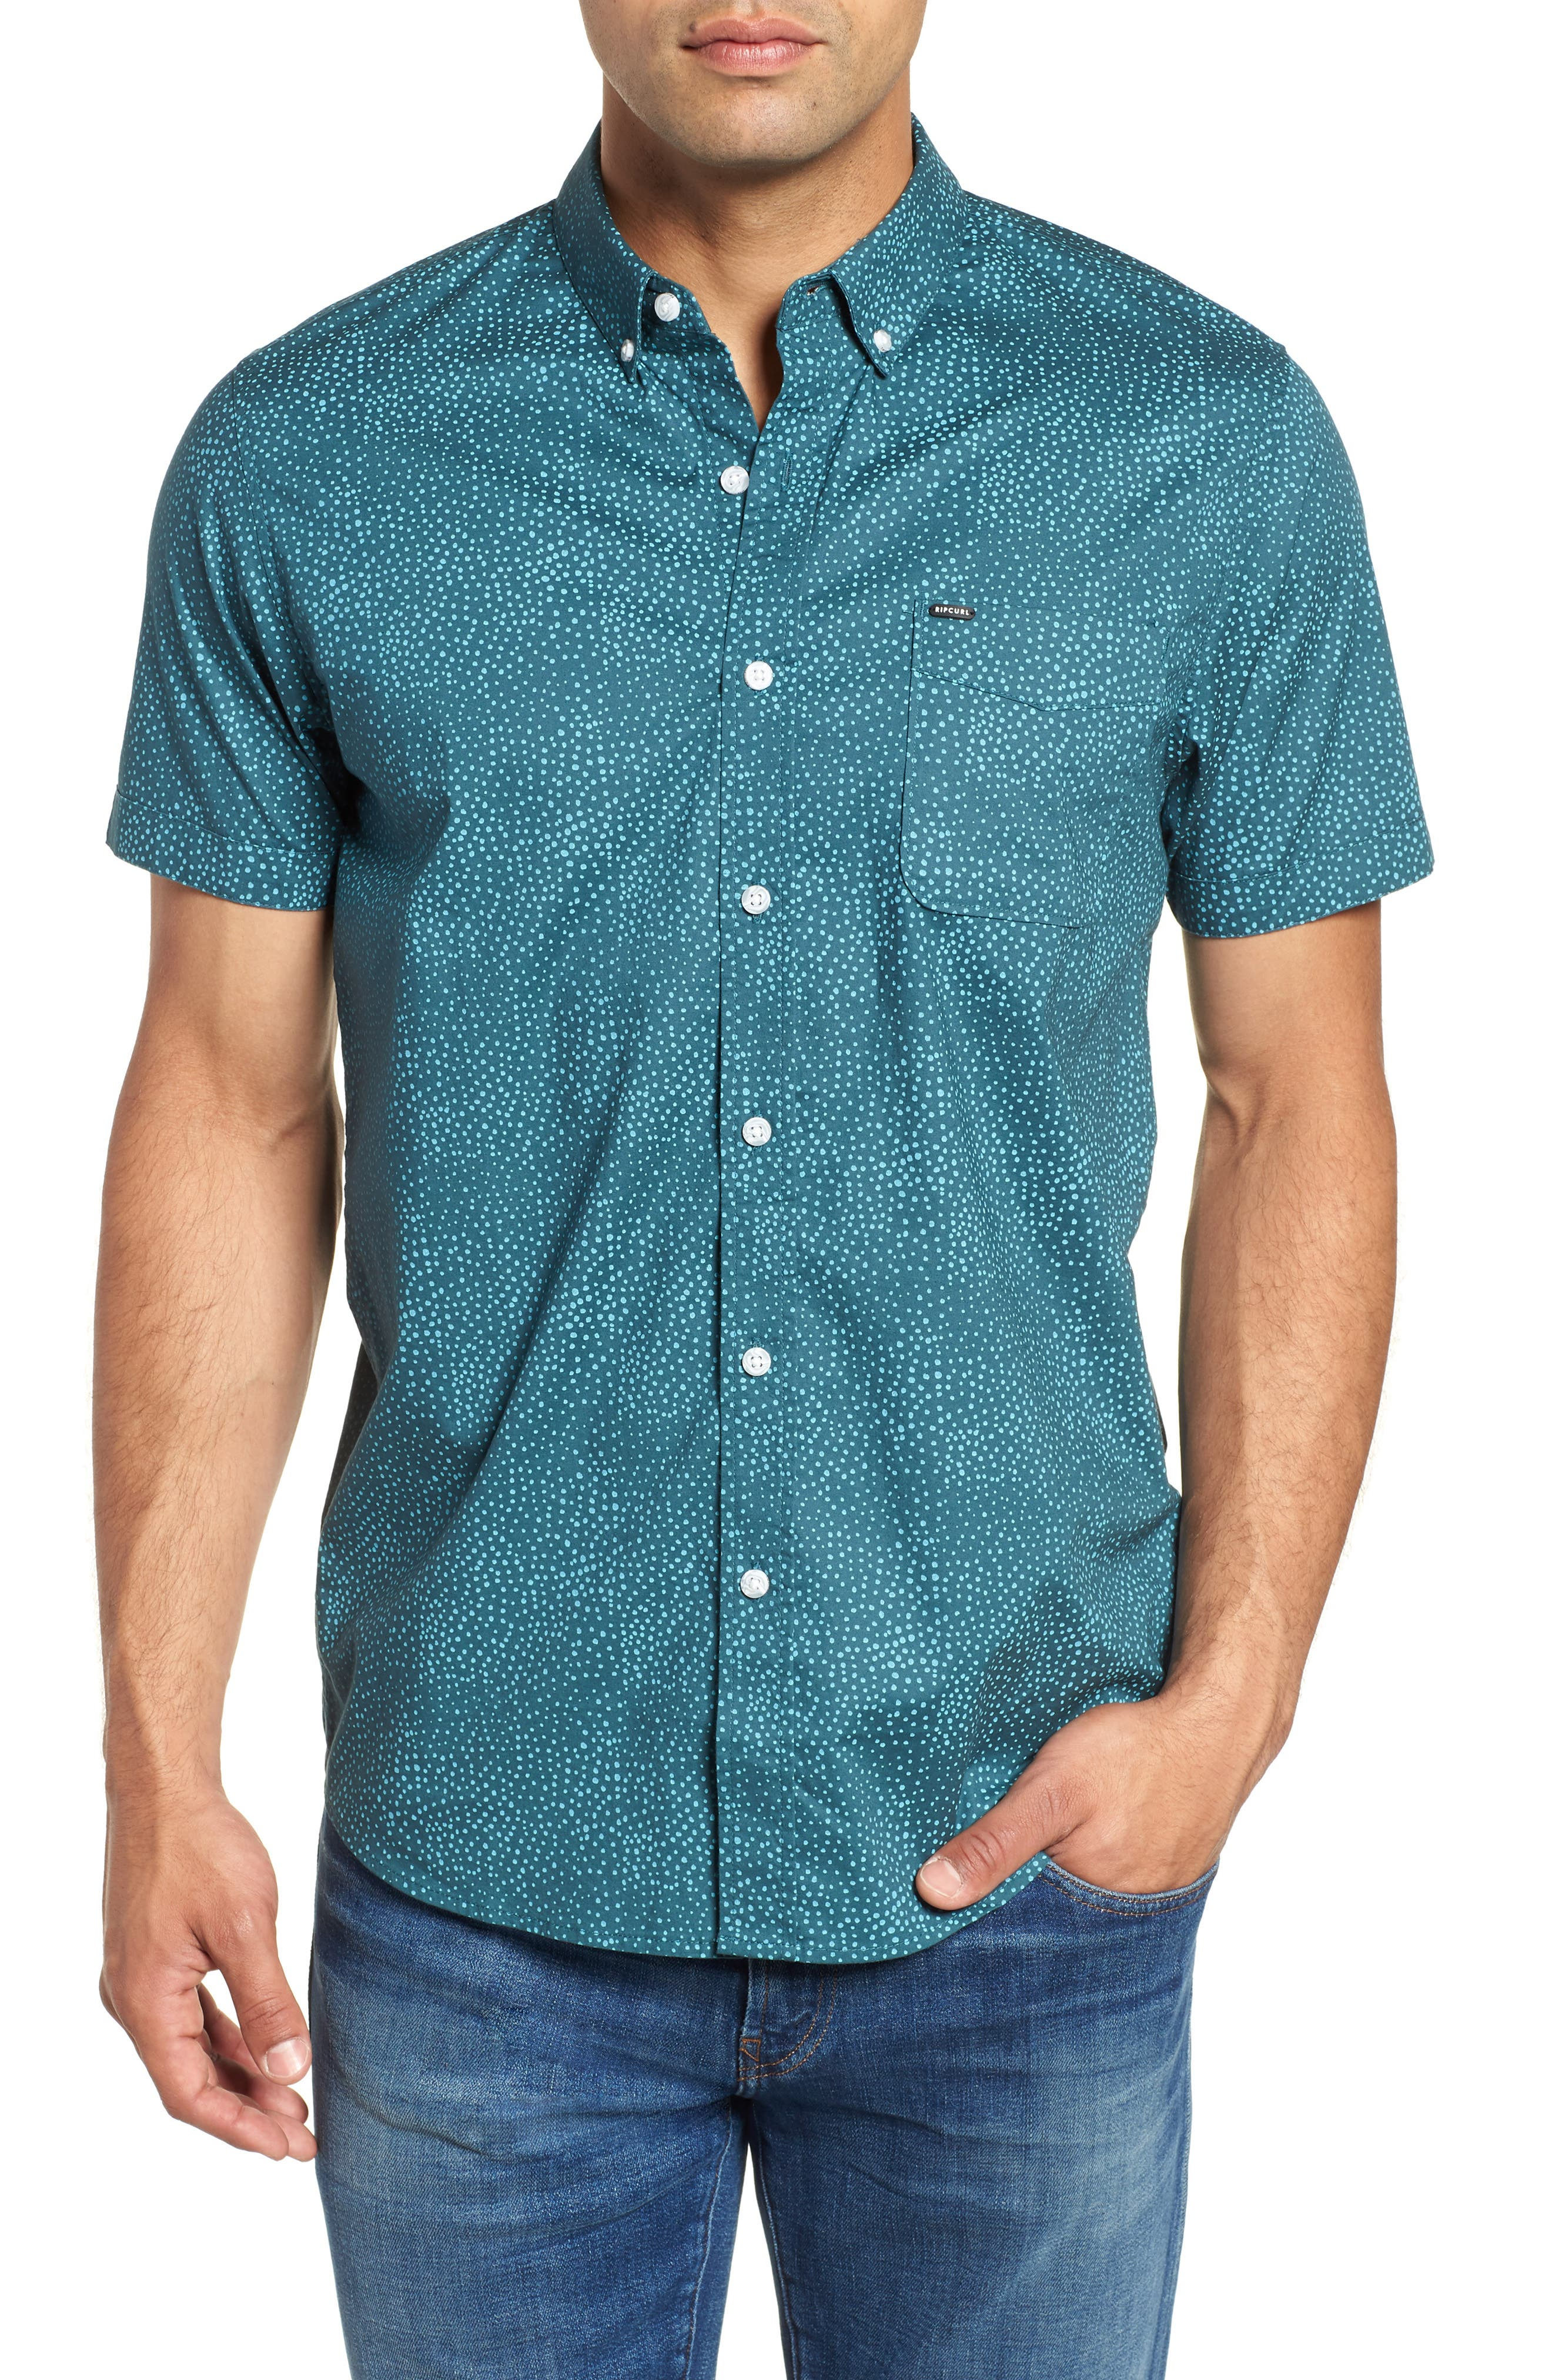 Money Tree Woven Shirt,                         Main,                         color, Tapestry